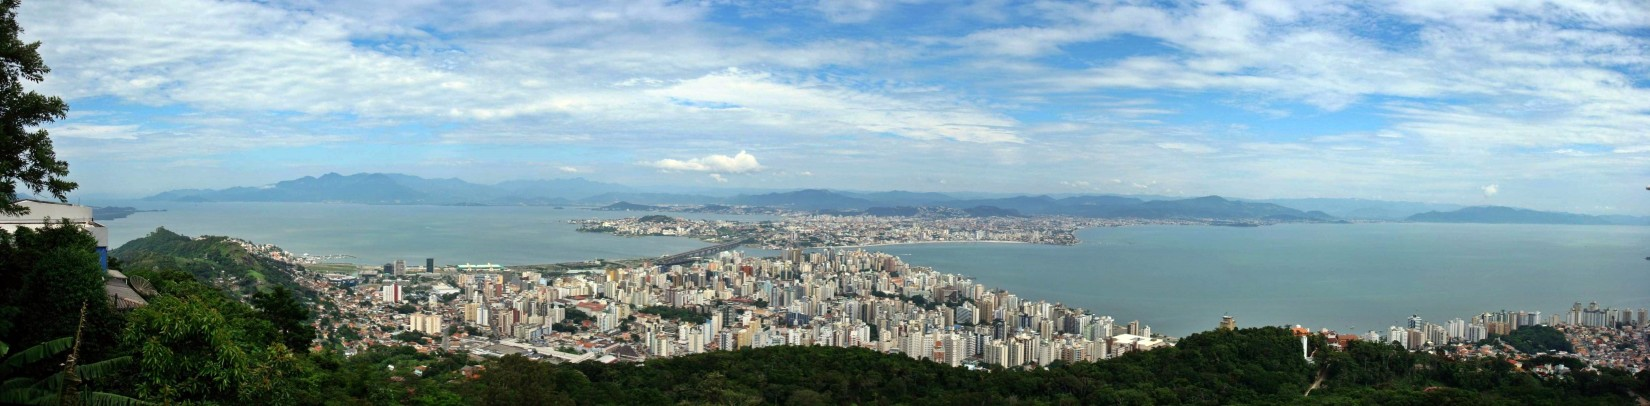 Panorama Florianópolis (CC BY-SA by Runge-36)